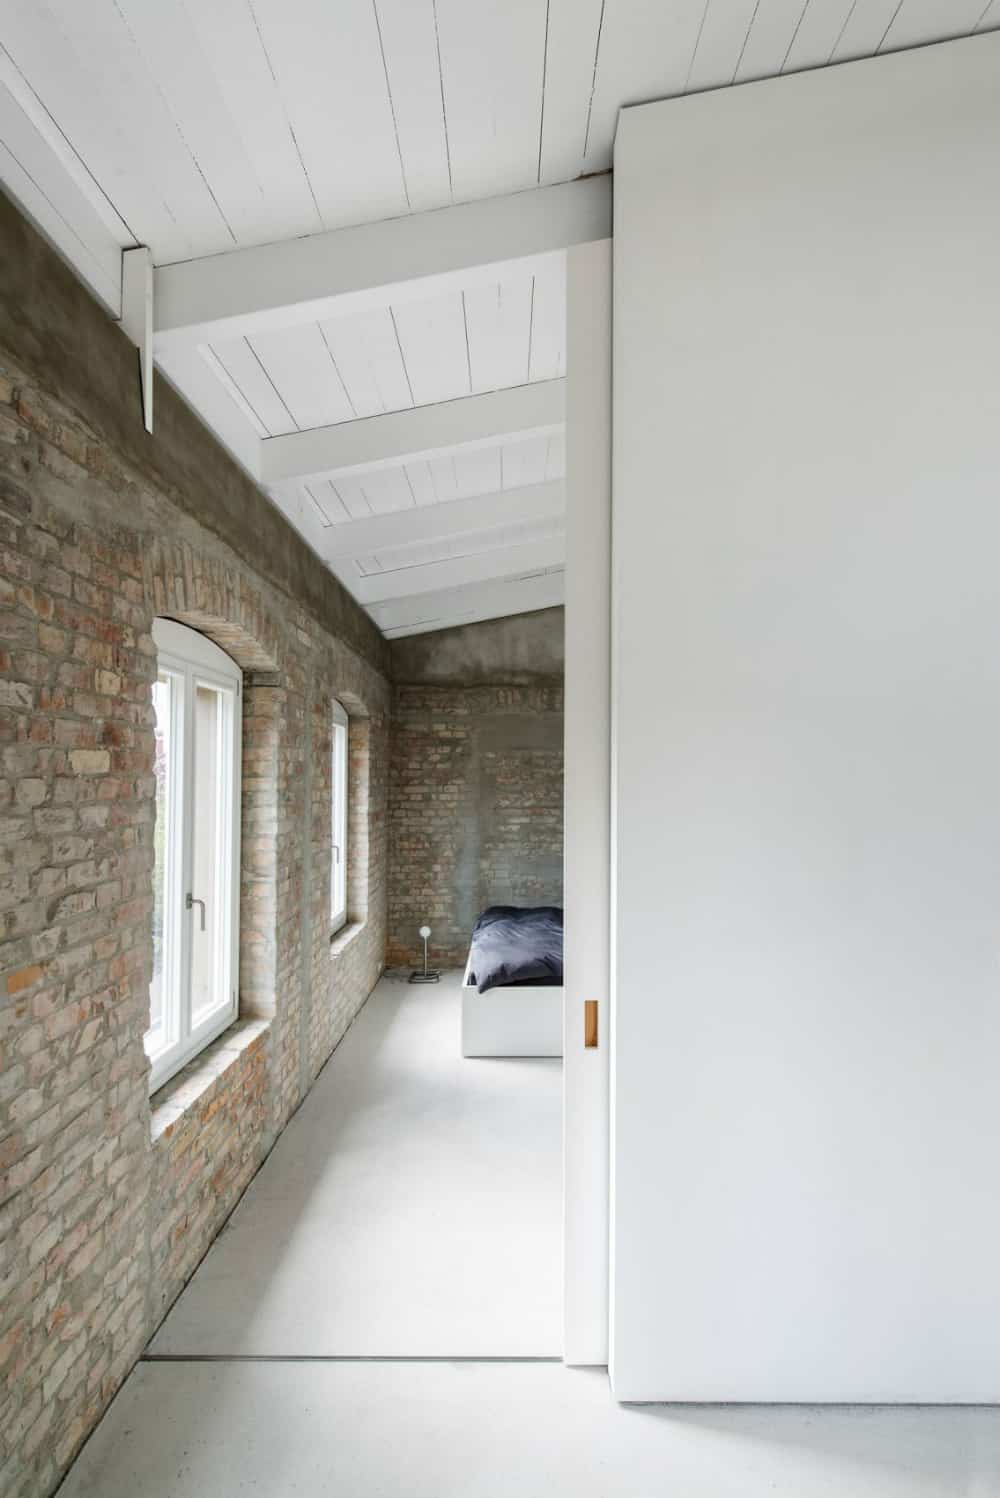 Bedroom has the same exposed brick walls